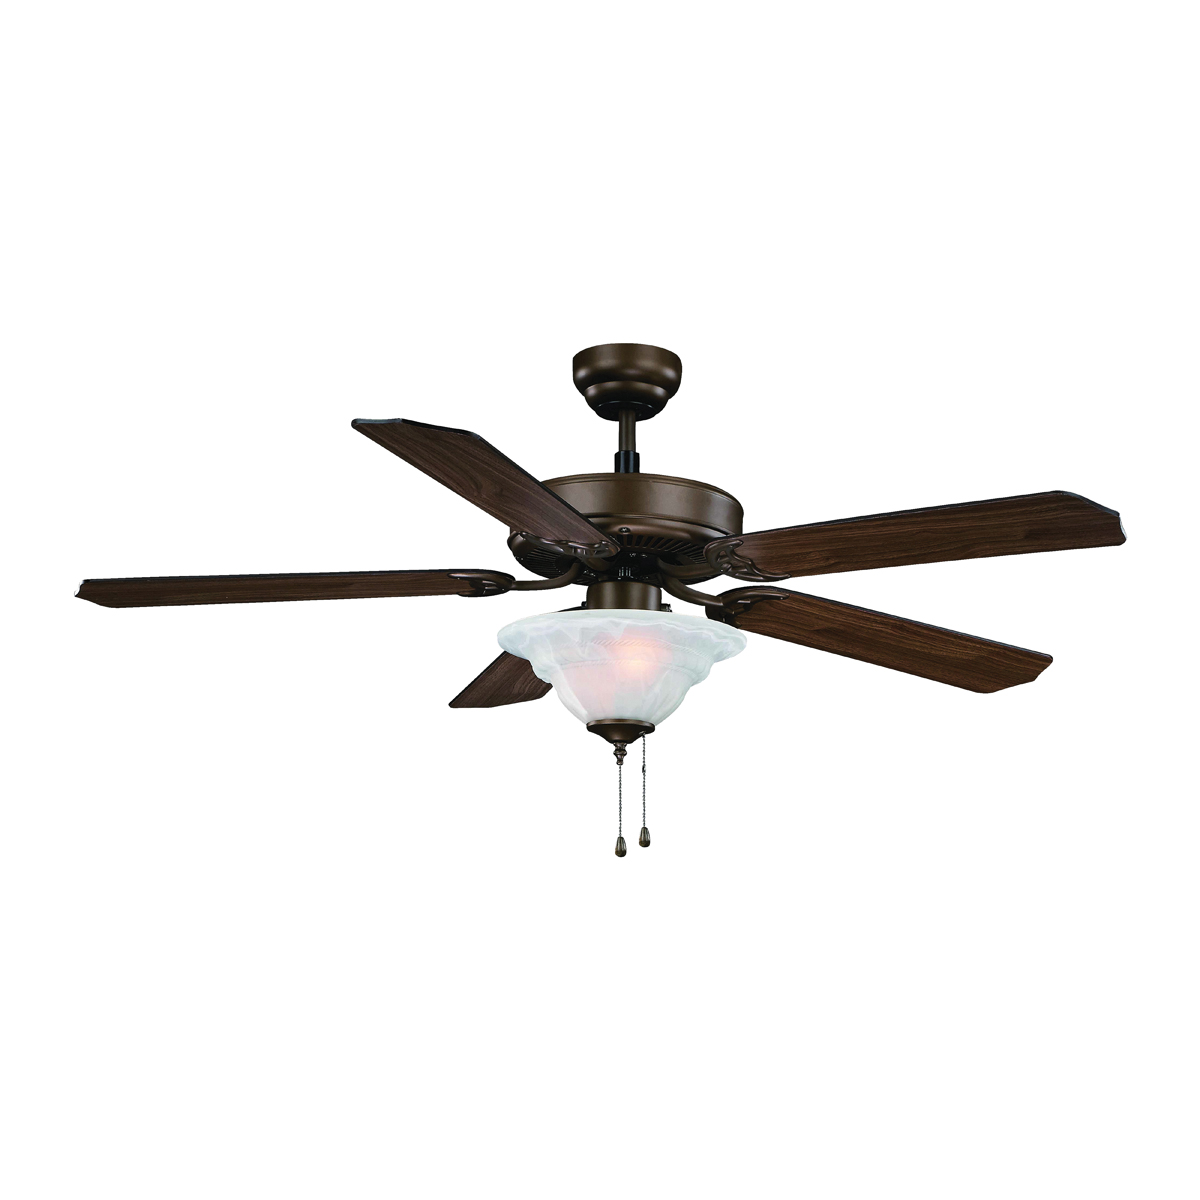 Picture of Boston Harbor CF-B552-ORB Ceiling Fan, 0.8 A, 120 V, 5-Blade, 52 in Sweep, 2942 cfm Air